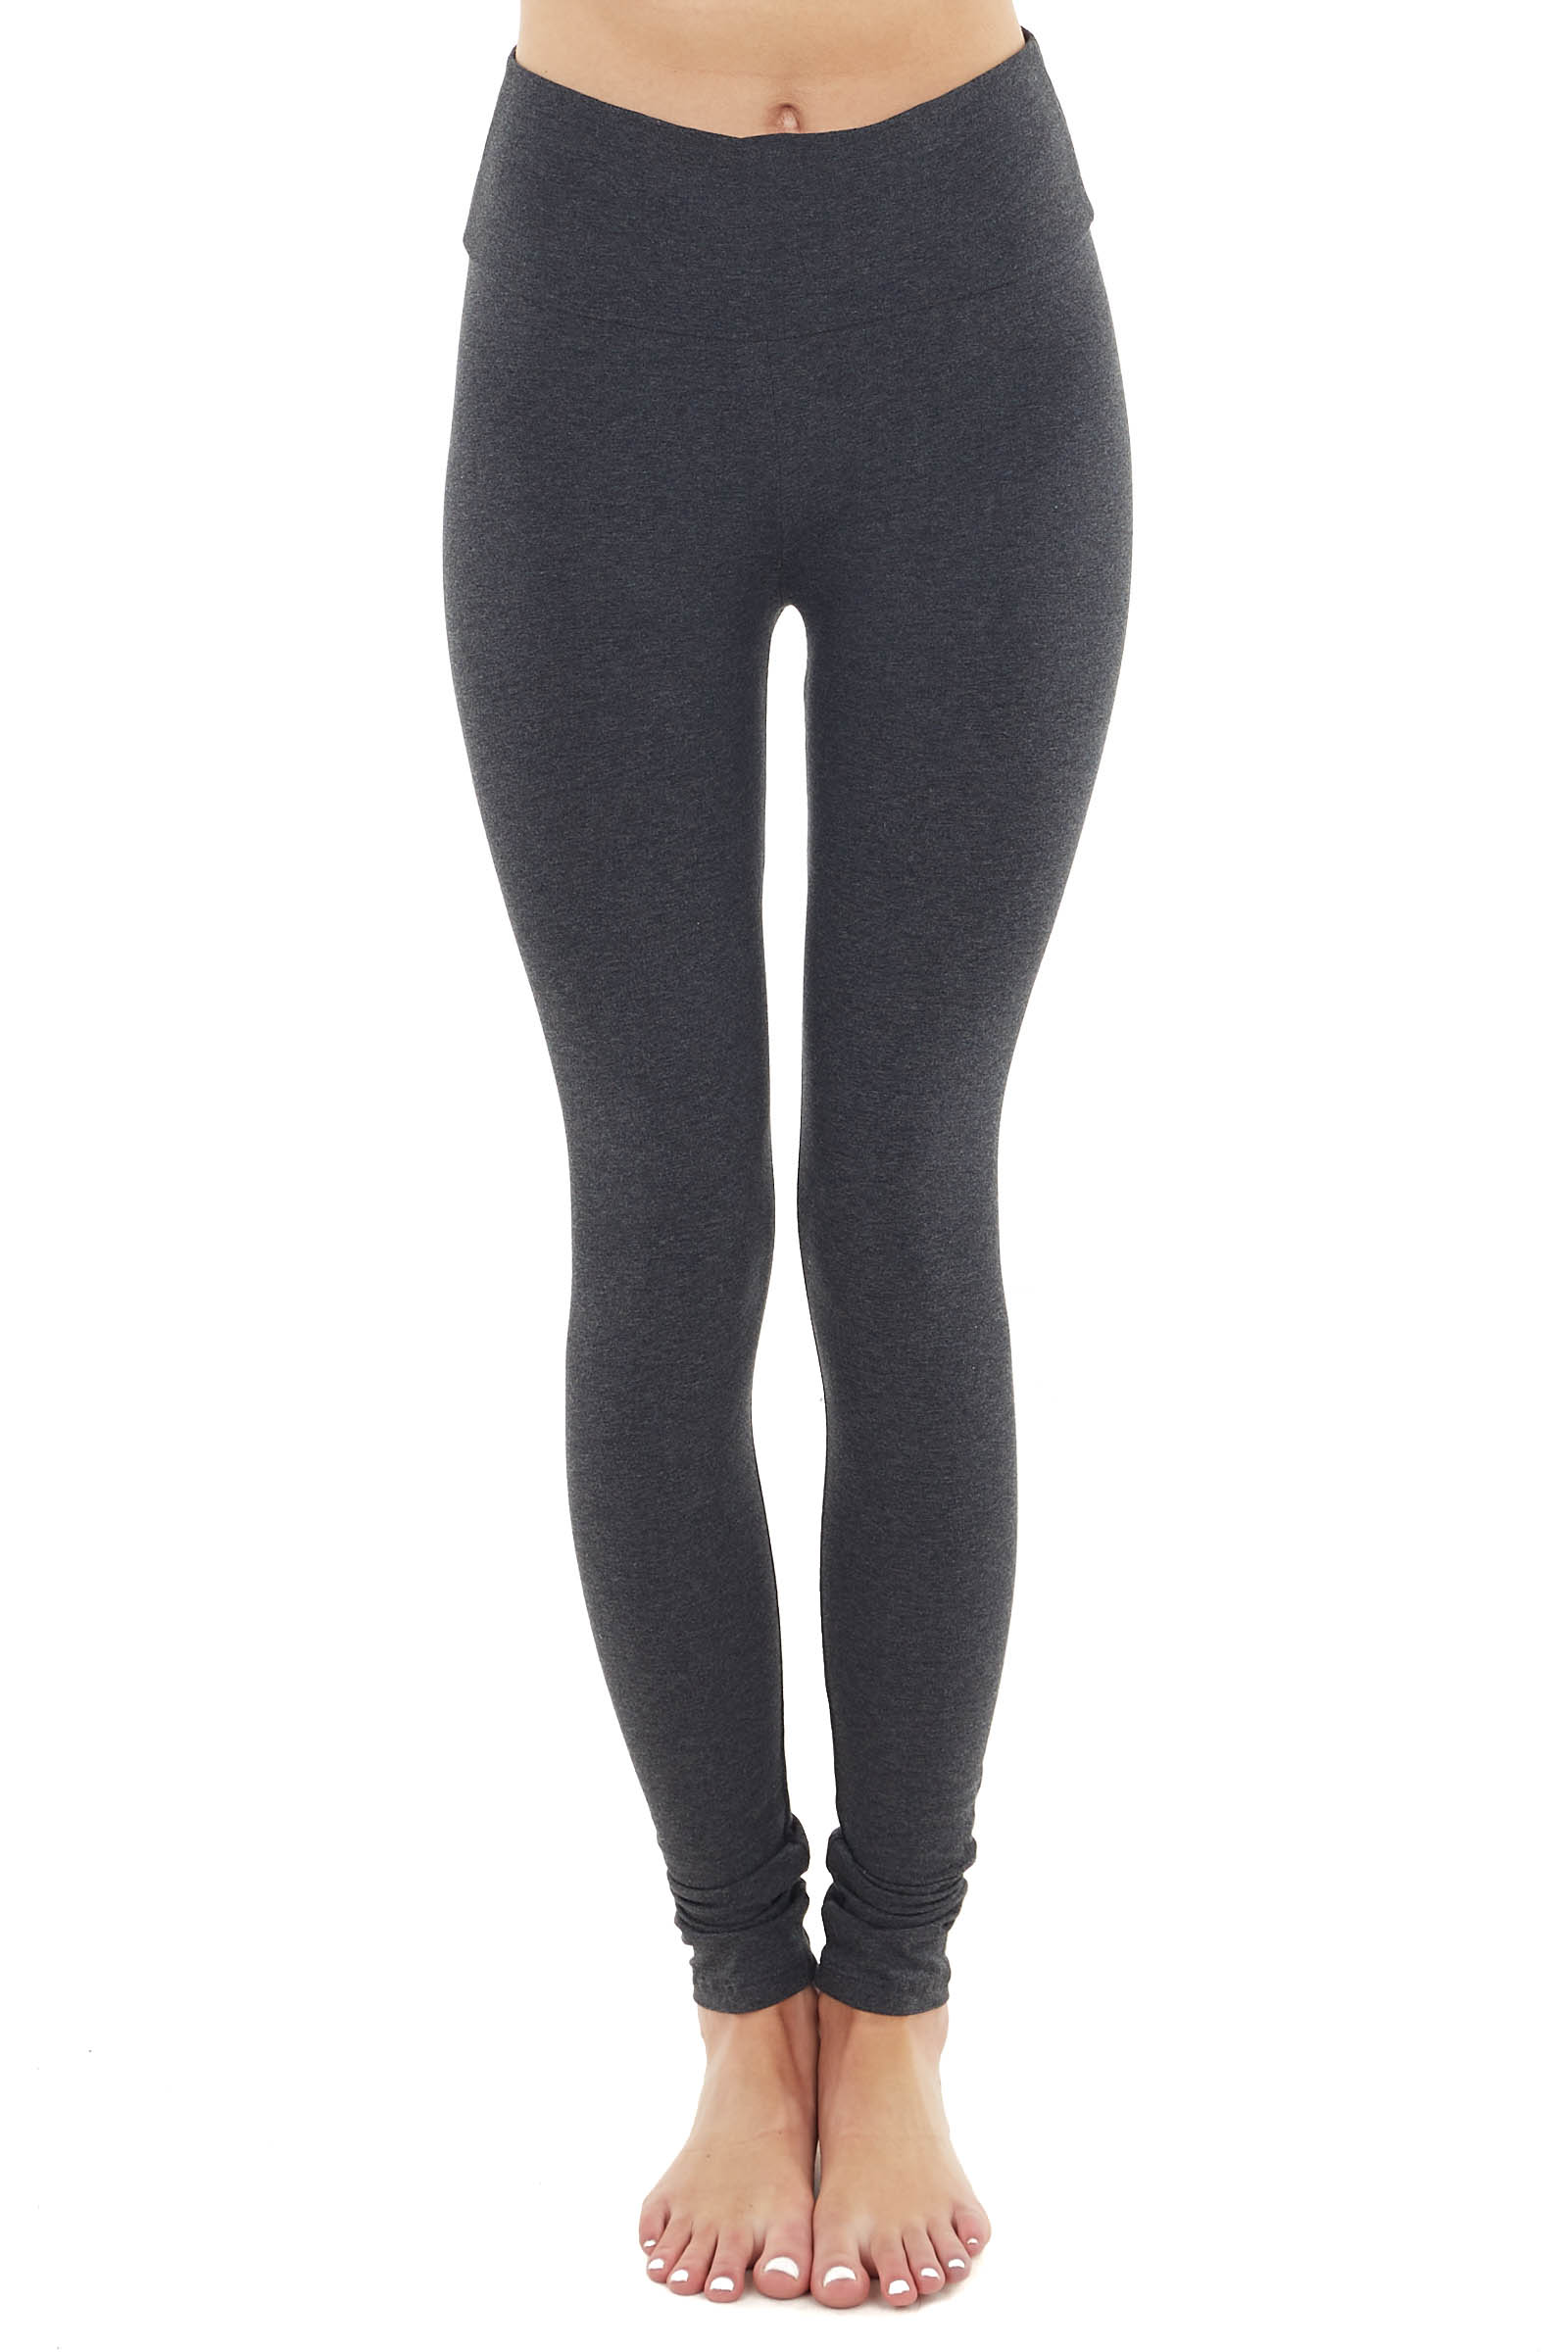 Charcoal Comfy Stretchy Knit Leggings with Banded High Waist